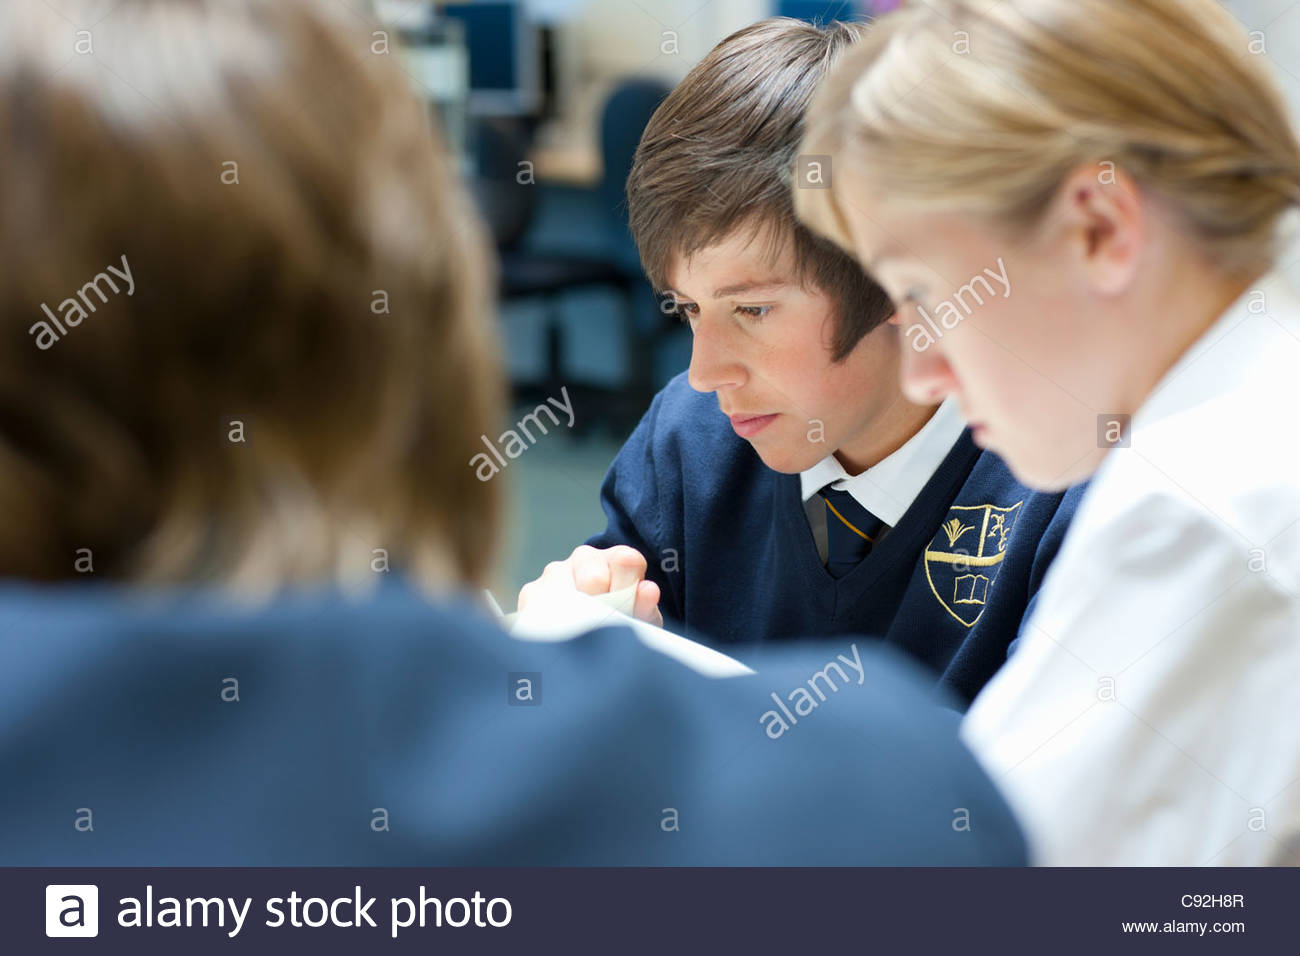 Close up of students in school uniforms studying - Stock Image